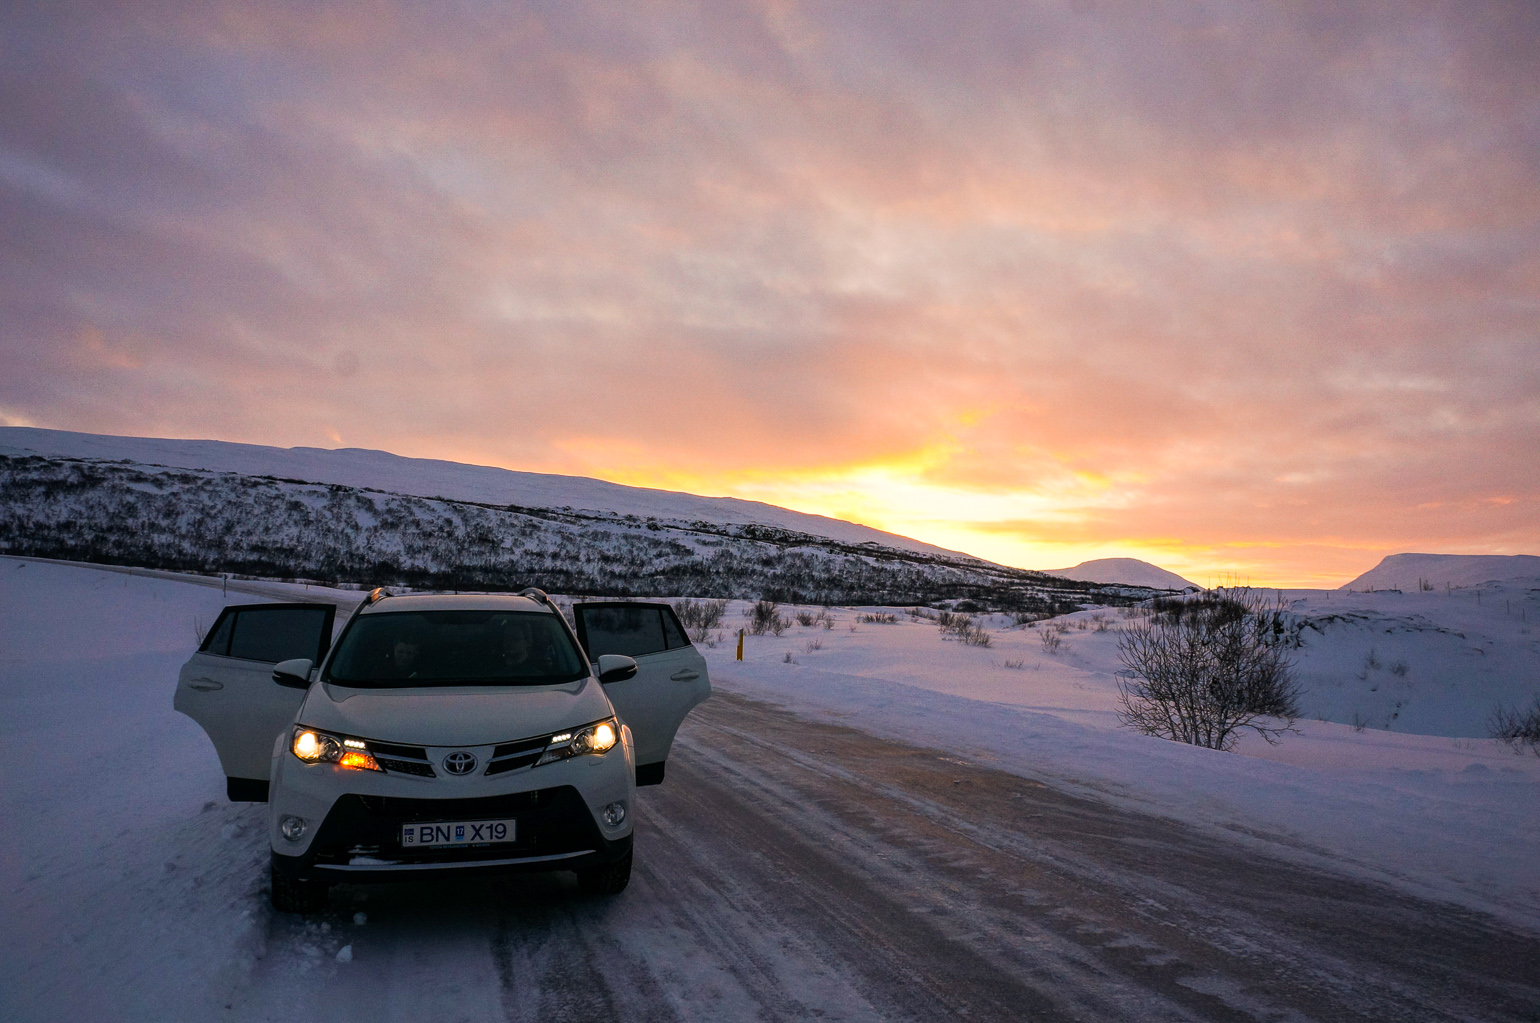 Drive Time Locations >> Driving The Ring Road of Iceland in 11 Days – The Ultimate Winter Itinerary | Bizarre Globe Hopper